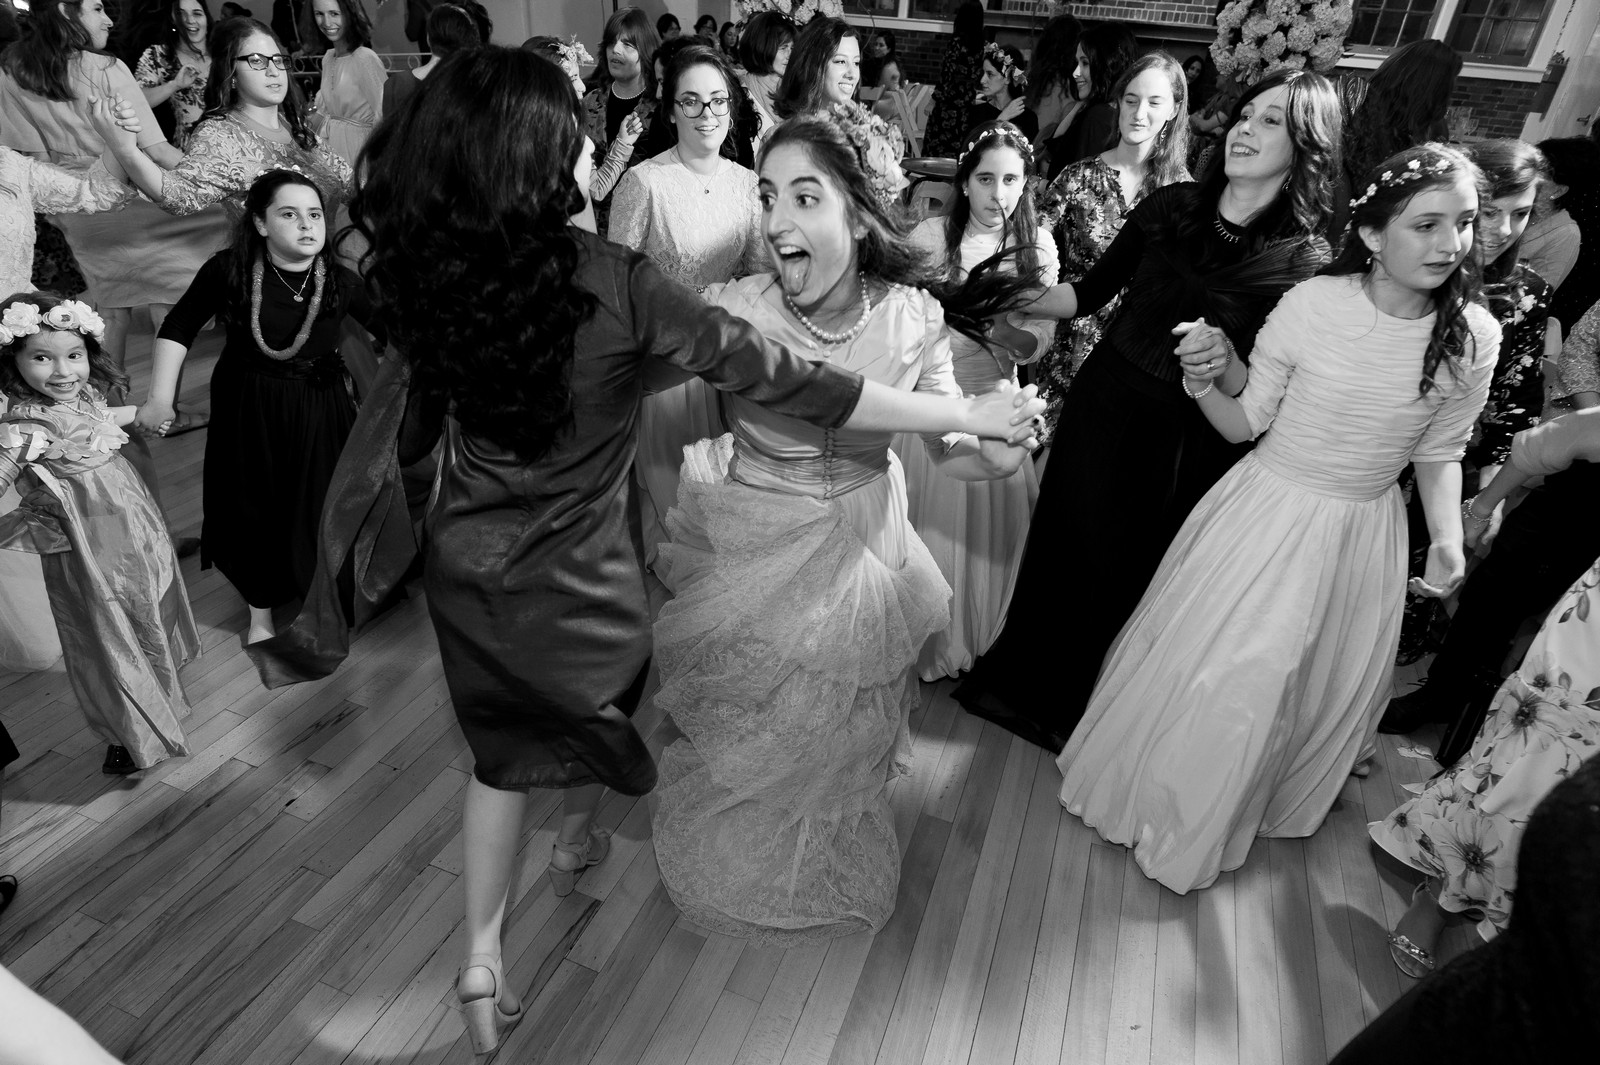 Chana and Motty's Chabad Jewish Wedding in Prospect Park Picnic House, Brooklyn, NY, Photos by Chaim Schvarcz bride groom portraits ceremony family dancing